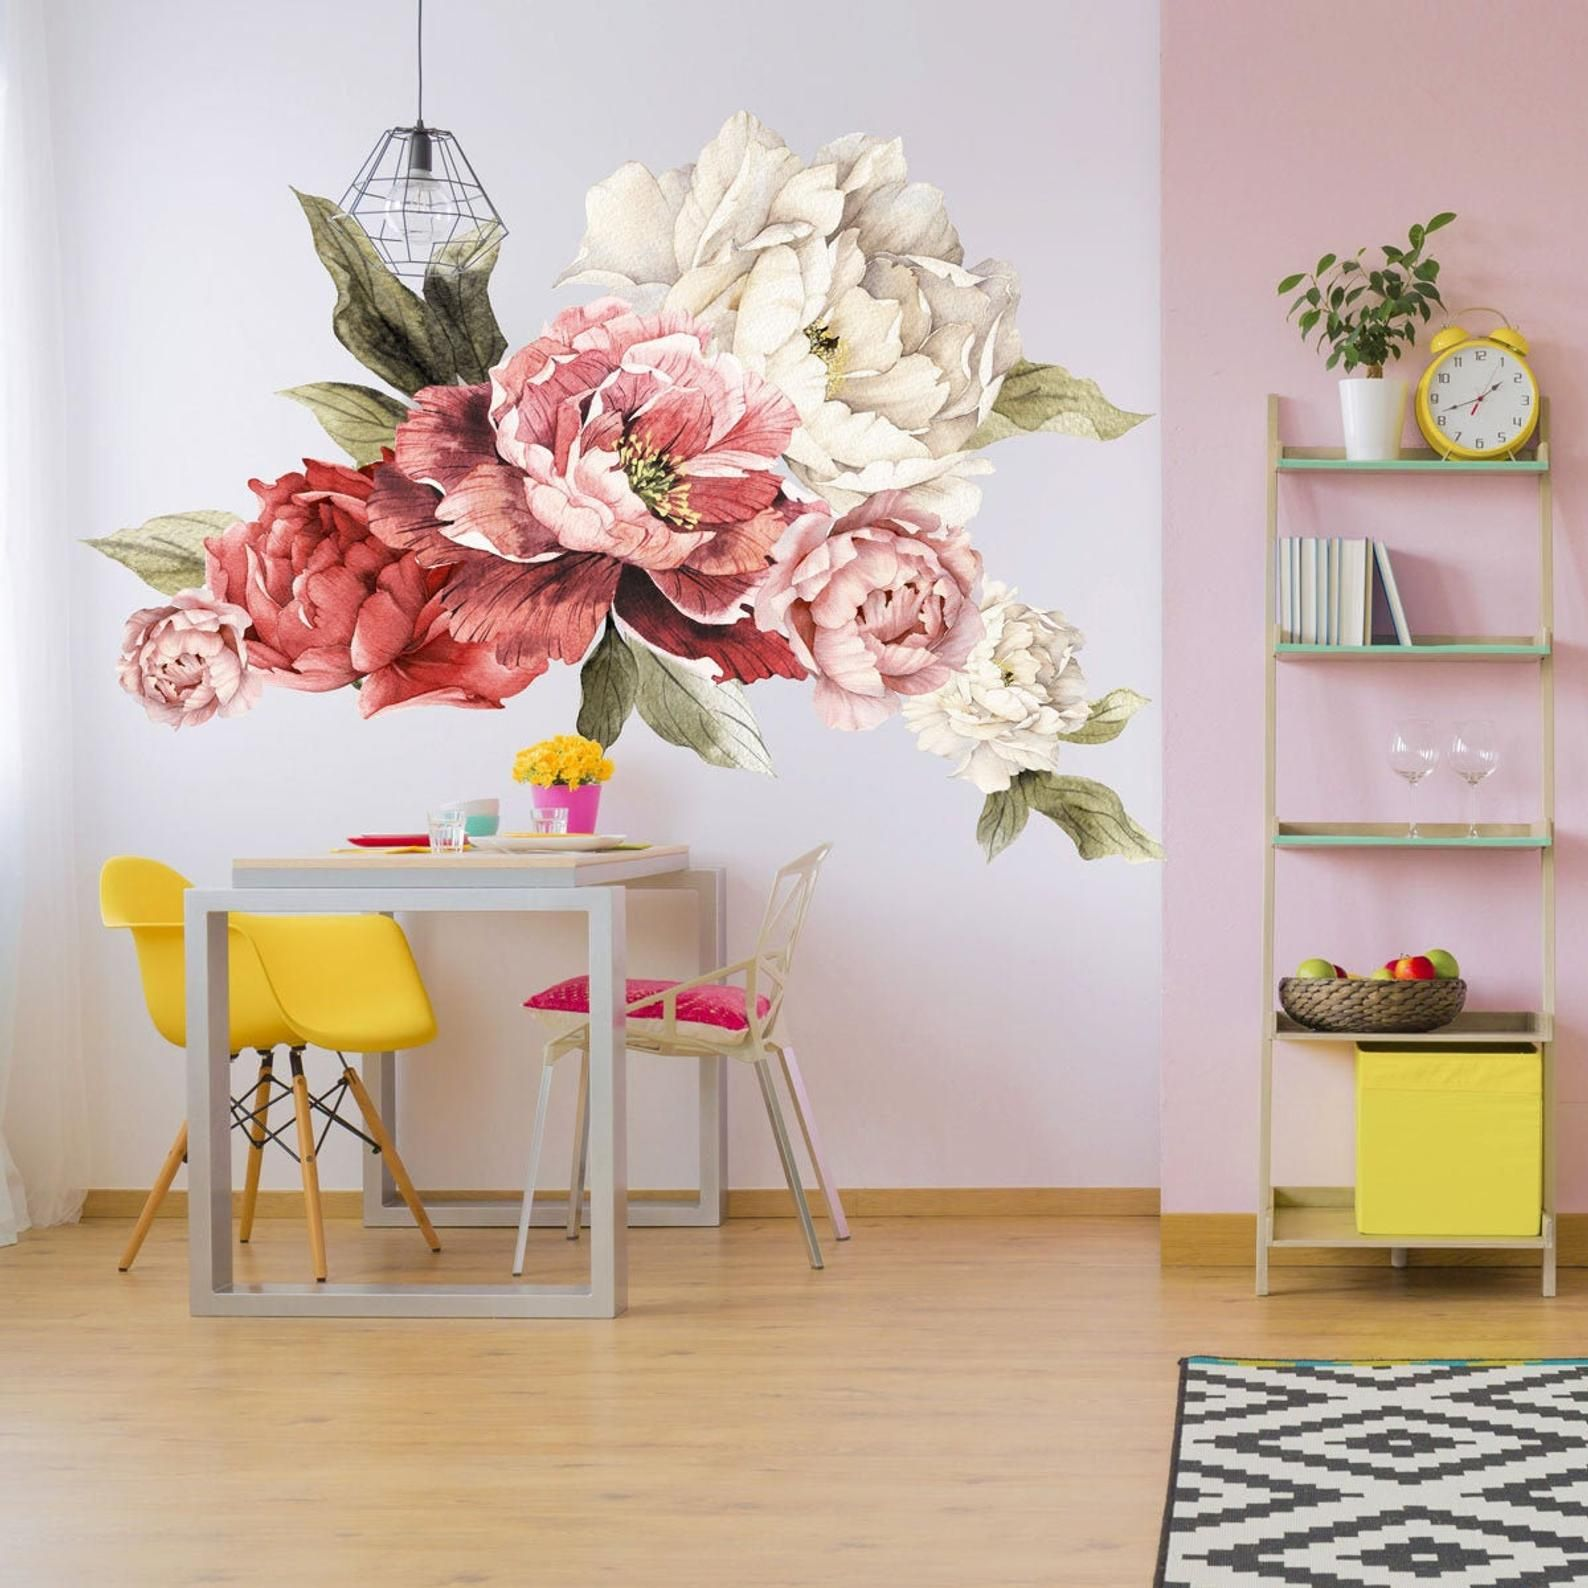 Flower Decals Large Peonies Wall Stickers Peel & Stick